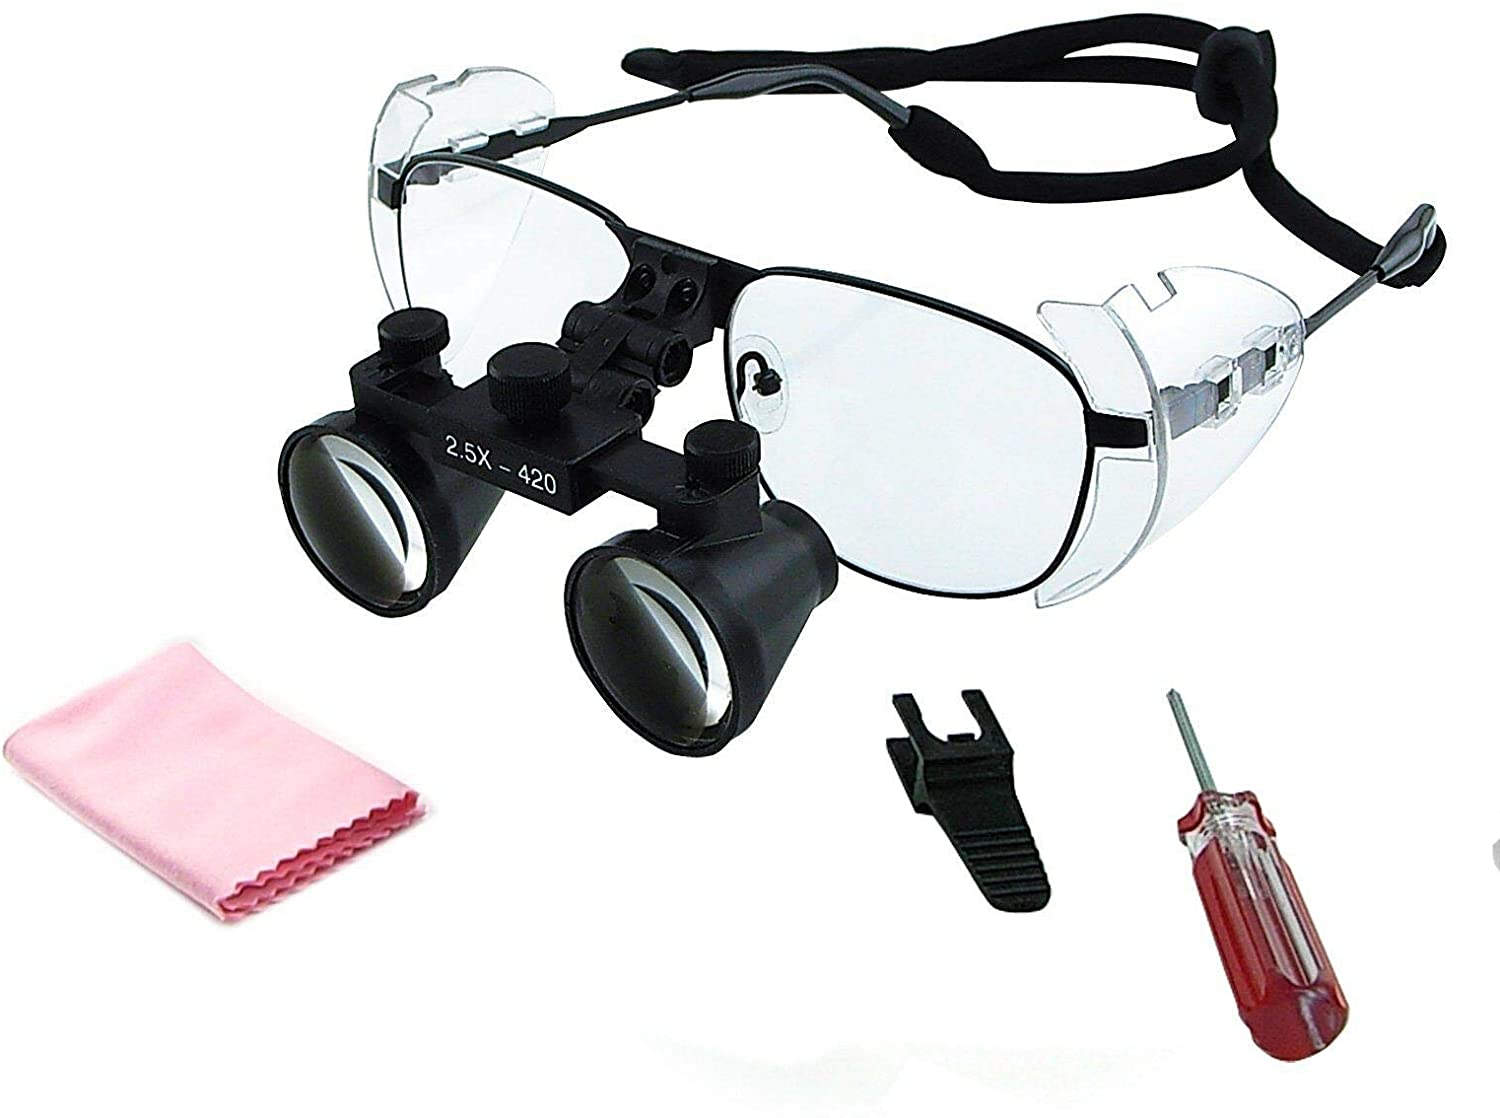 Aries Outlets 2.5X Magnification Dental Loupes Surgical Medical Binocular, 100mm Field of View